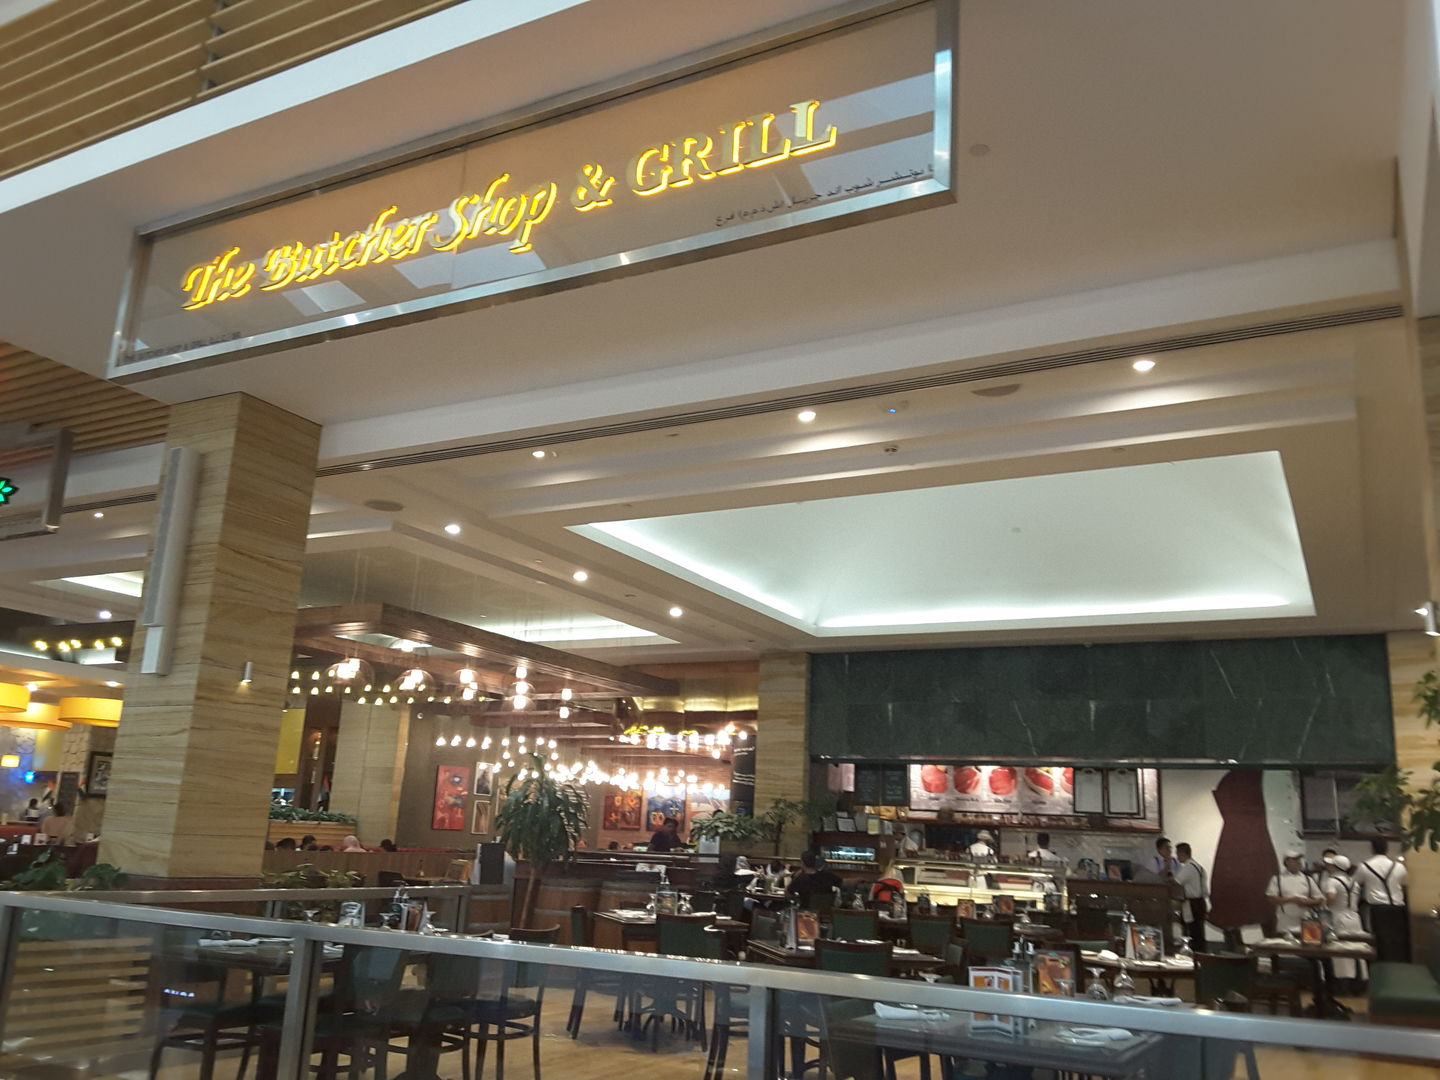 The Butcher Shop & Grill, (Restaurants & Bars) in Mirdif, Dubai